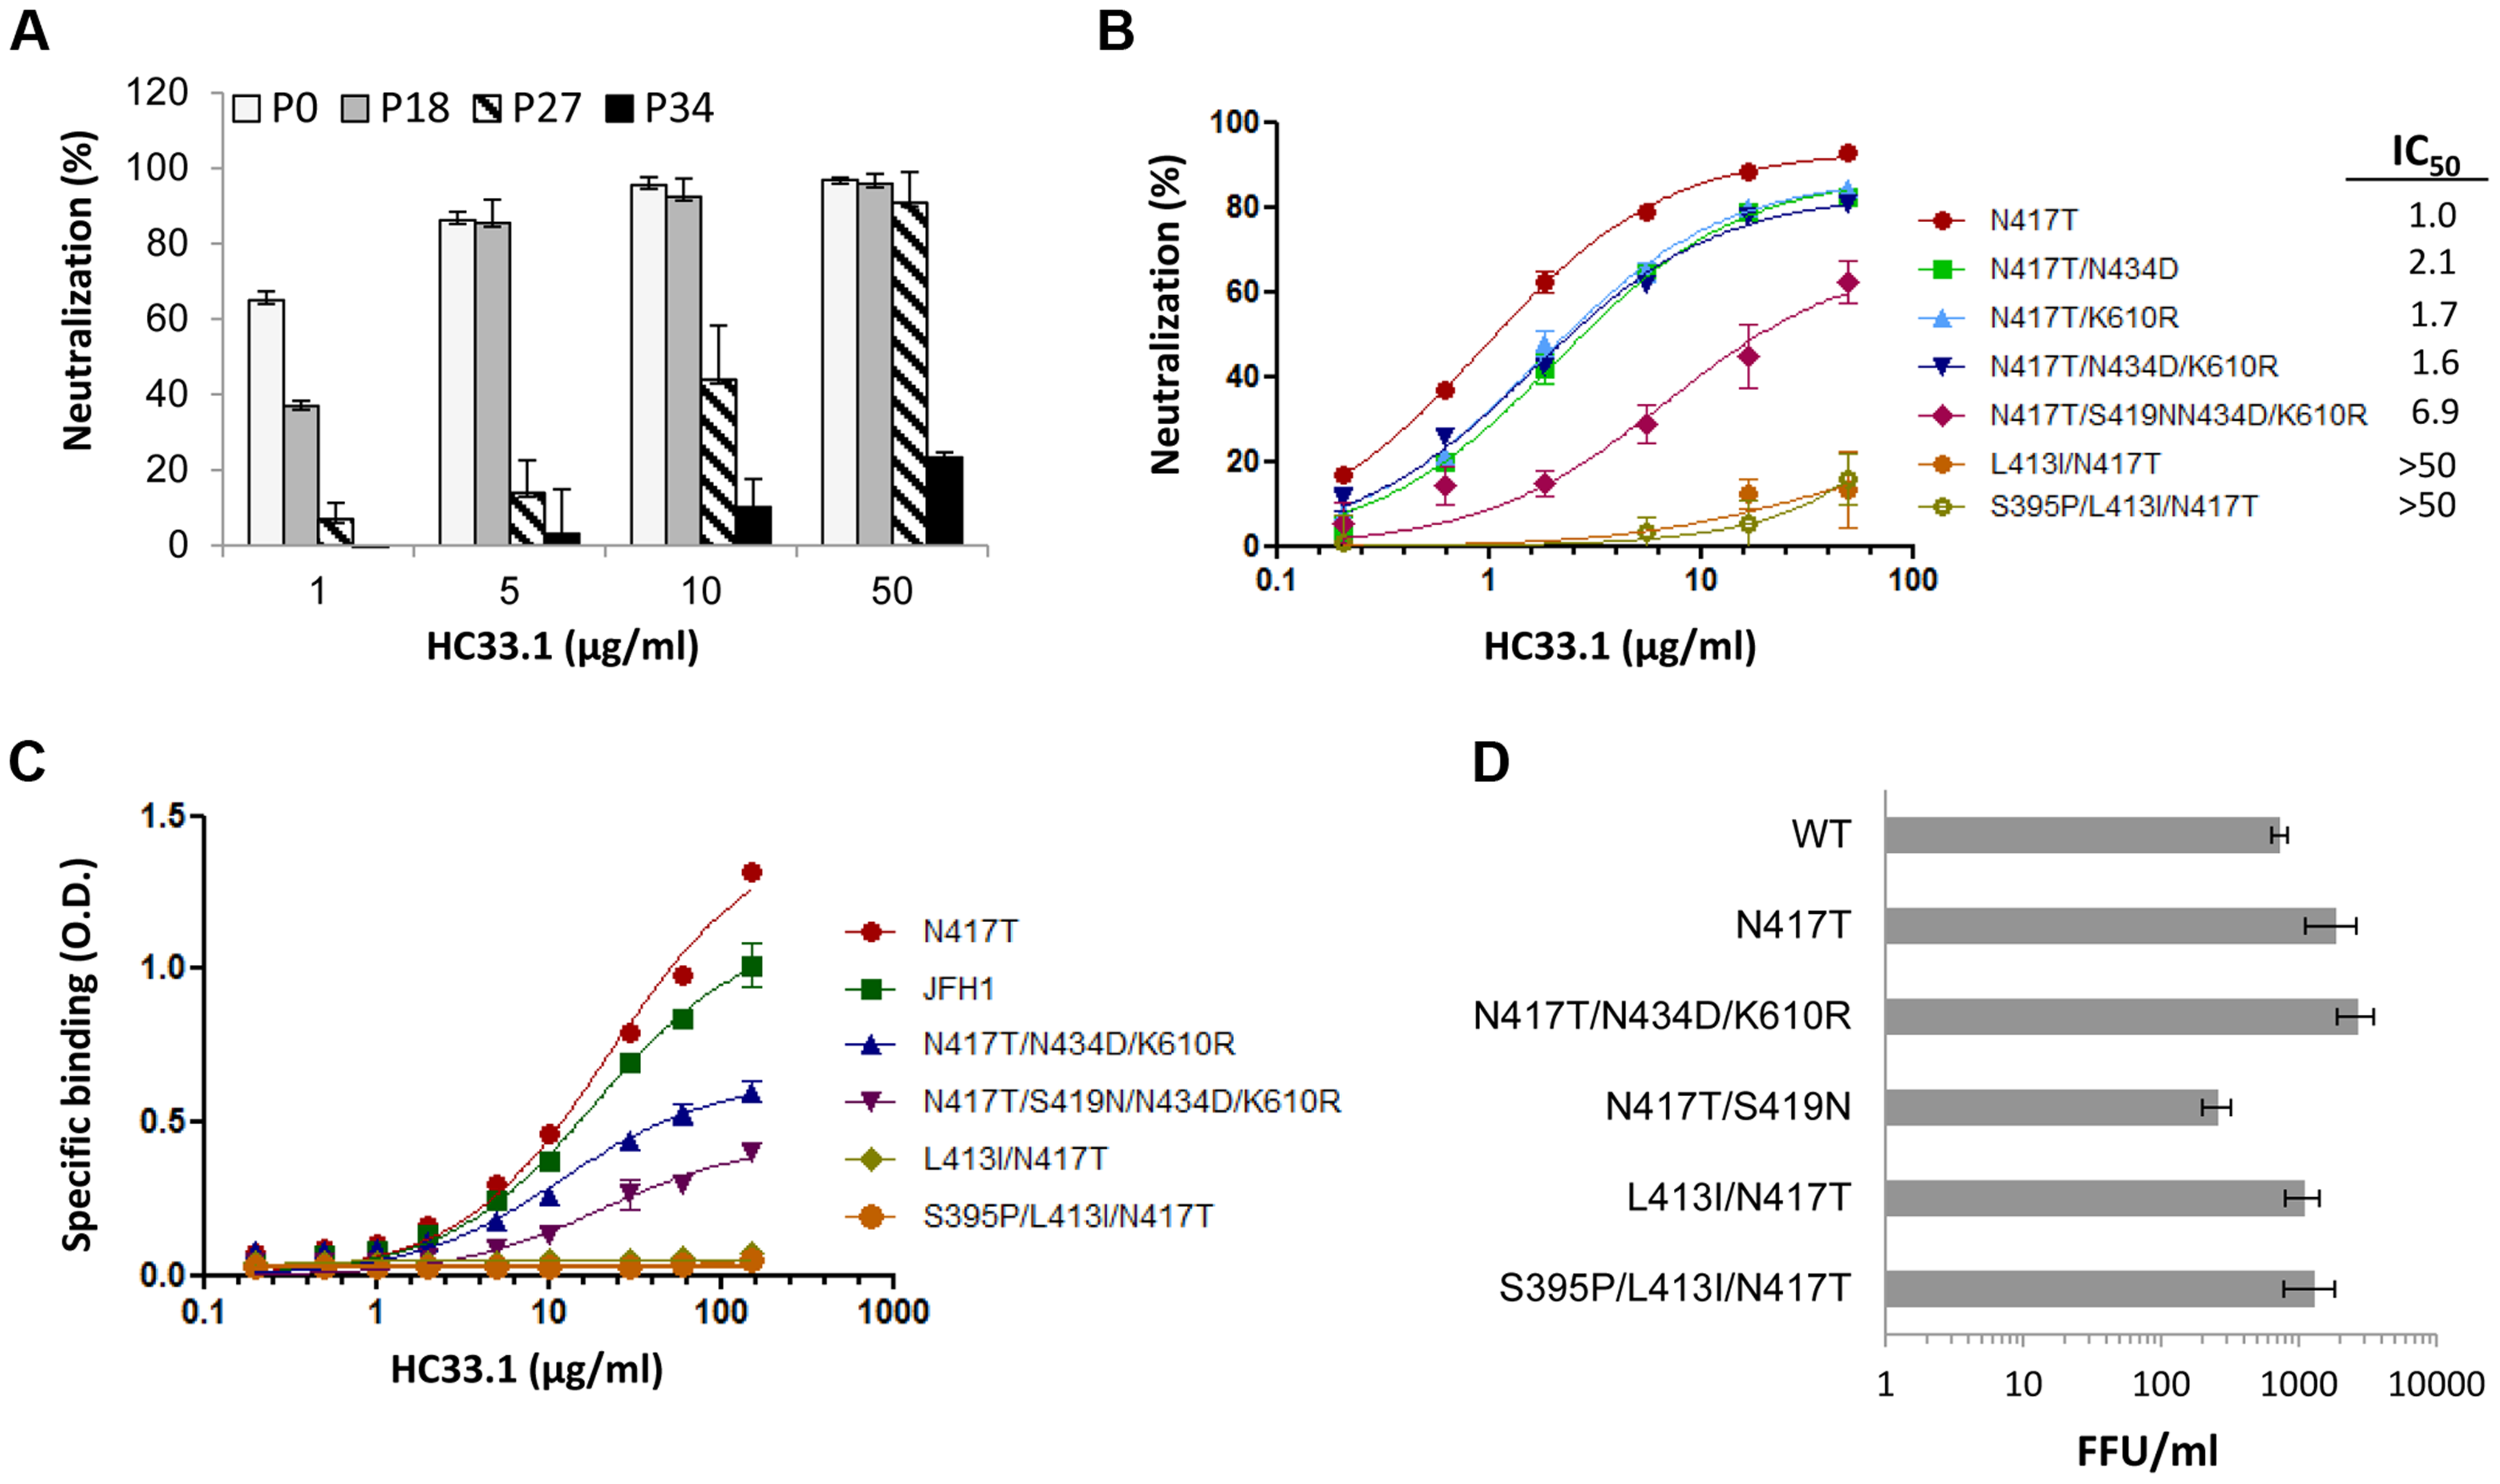 Analysis of escape variants on their sensitivity to HC33.1-mediated neutralization and binding, and their effect on in vitro viral fitness.